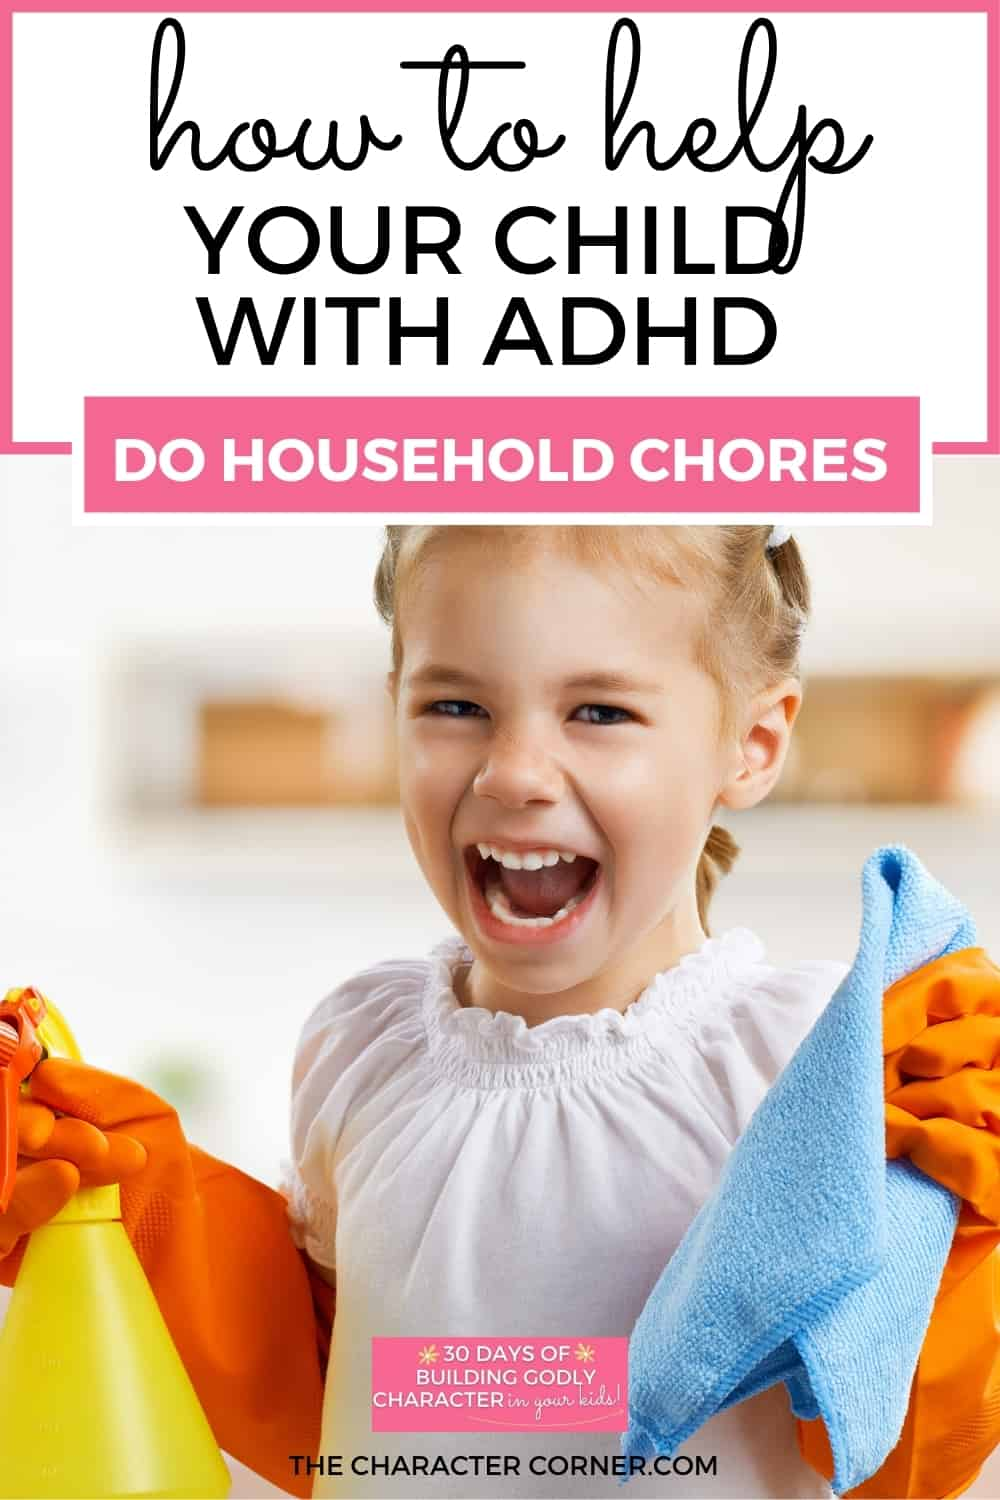 young girl excited to help with chores text on image reads how to help your child with ADHD do household chores